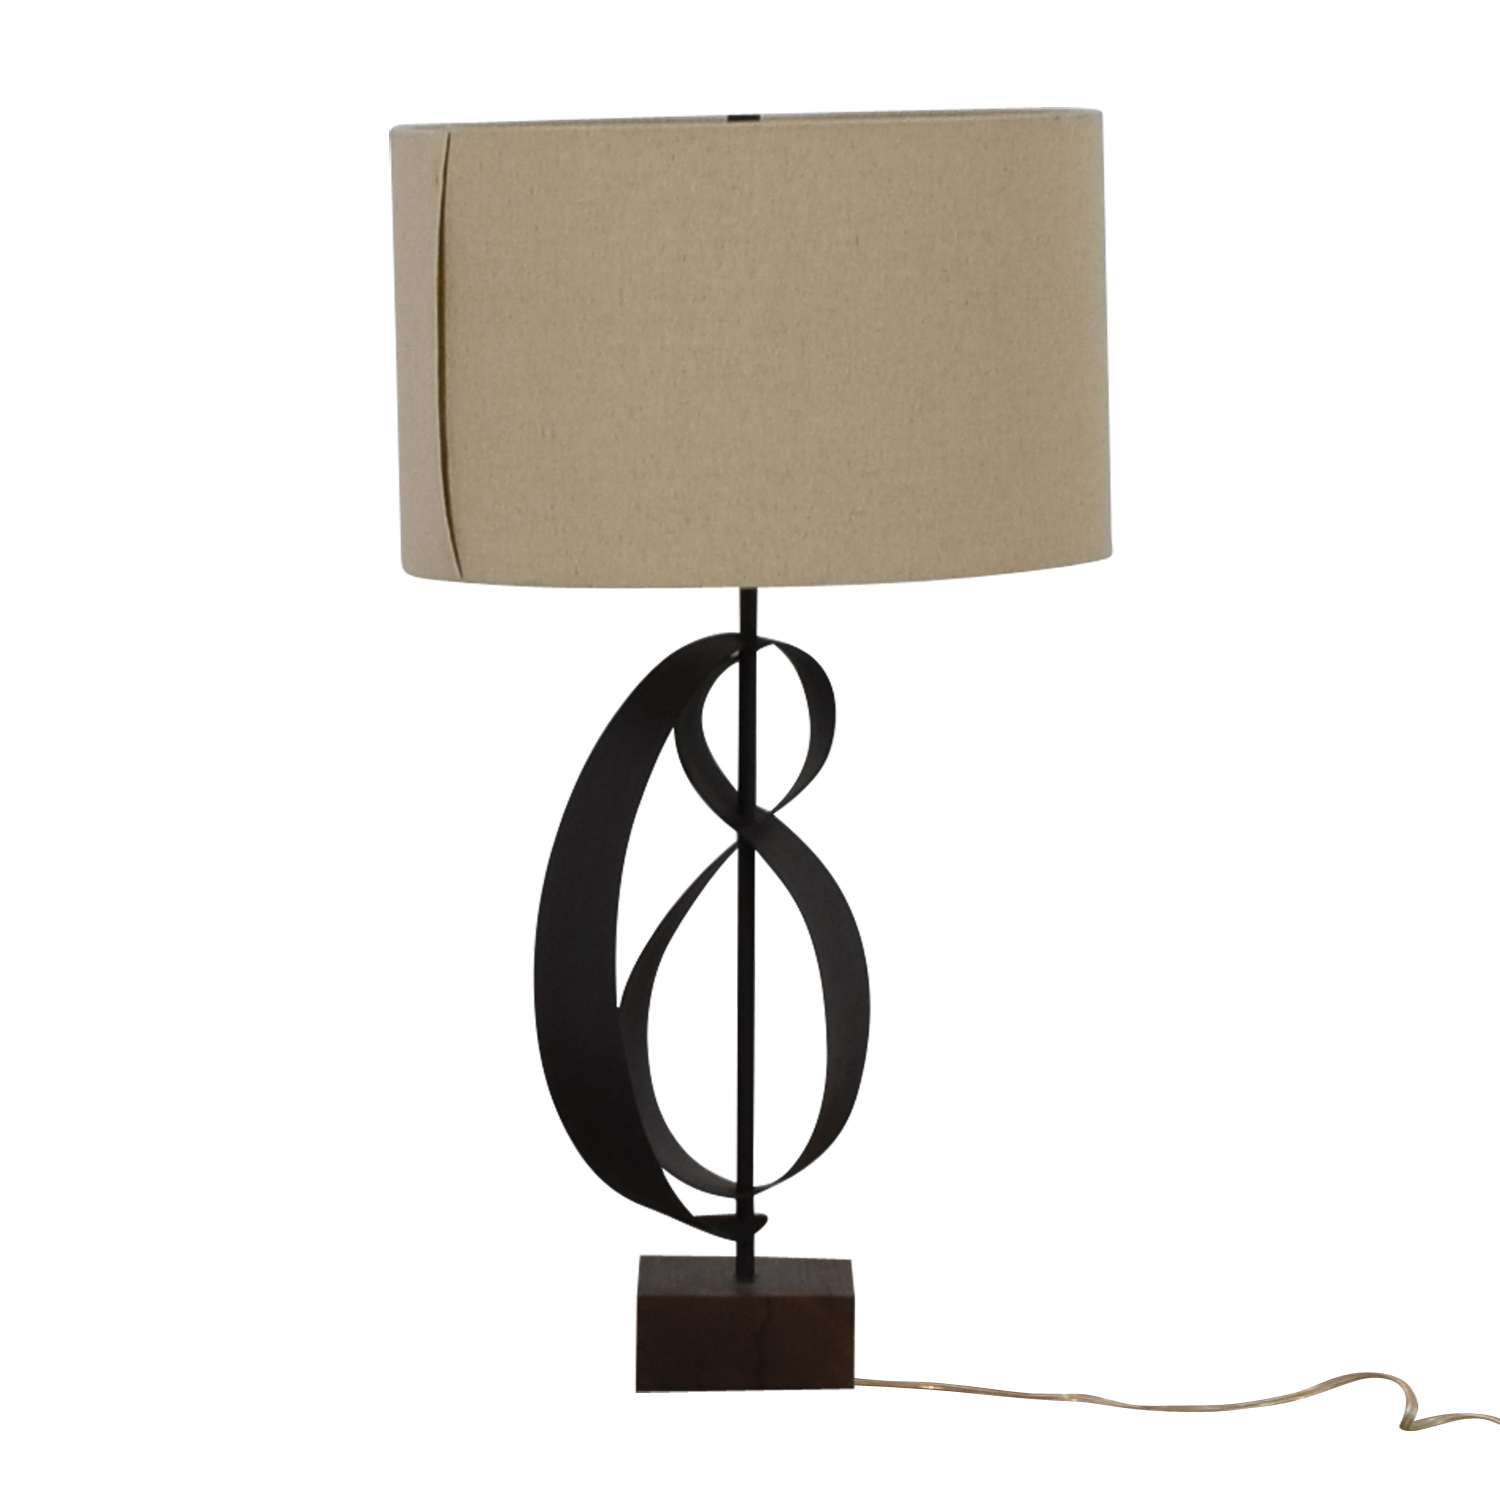 West Elm West Elm Curved Table Lamp dimensions